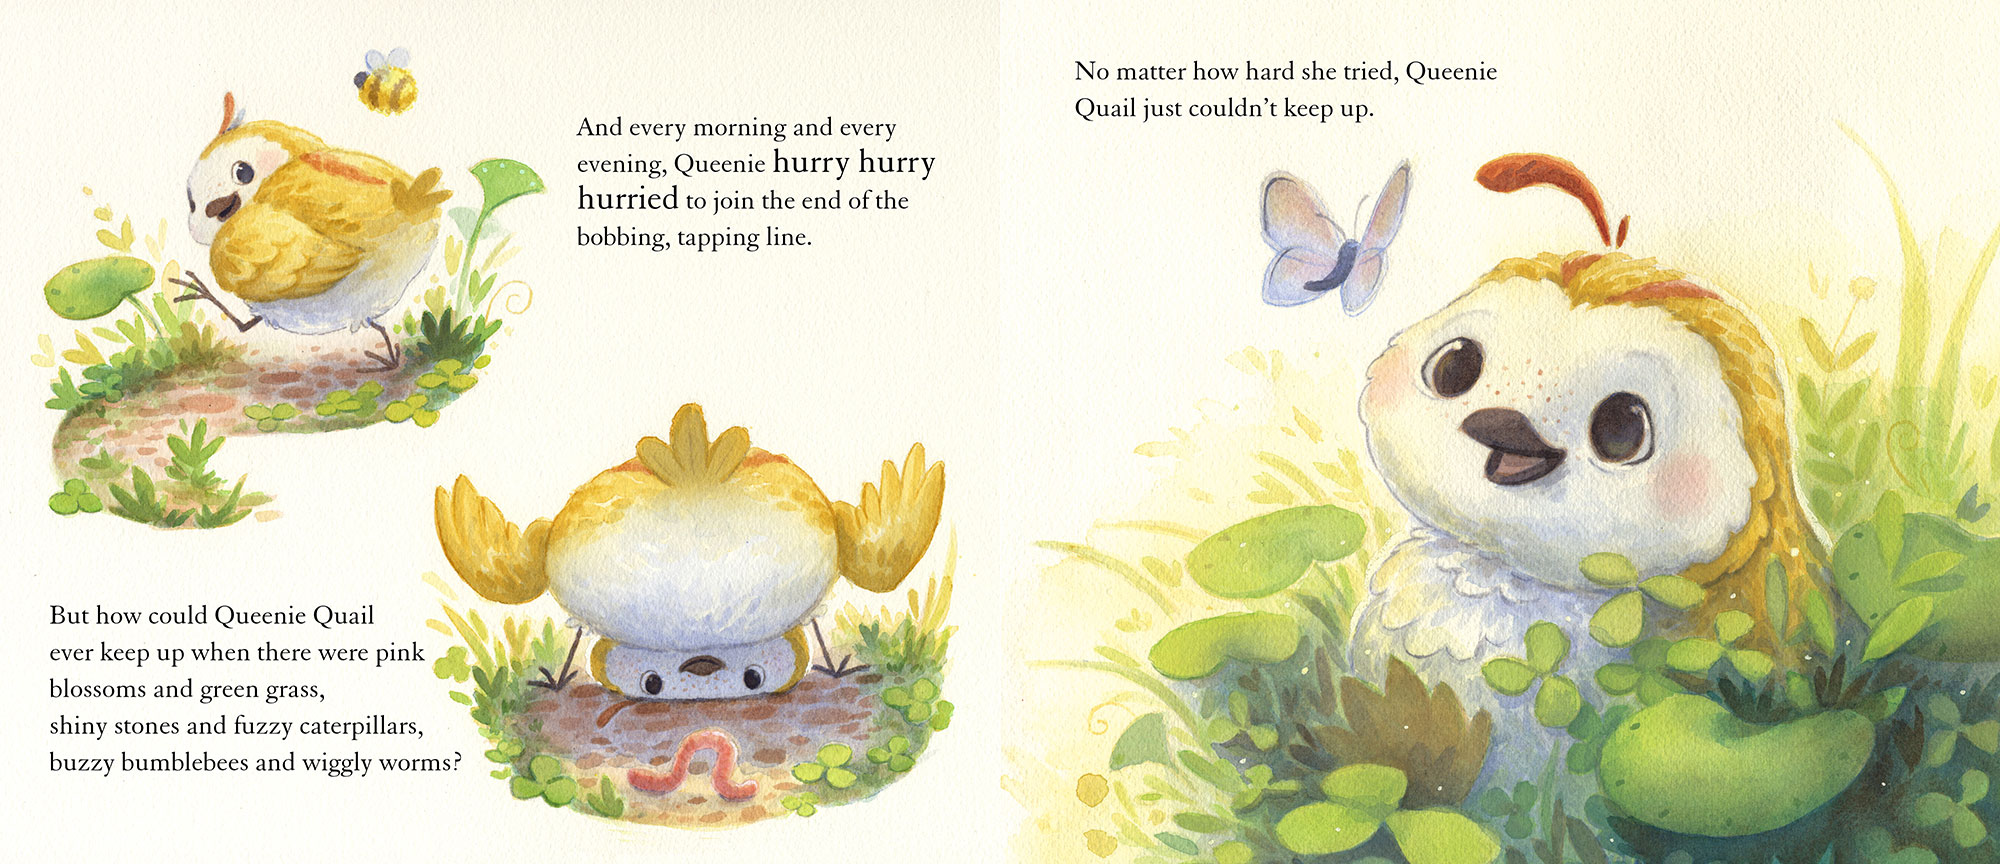 celebrate-picture-books-picture-book-review-queenie-quail-can't-keep-up-bee